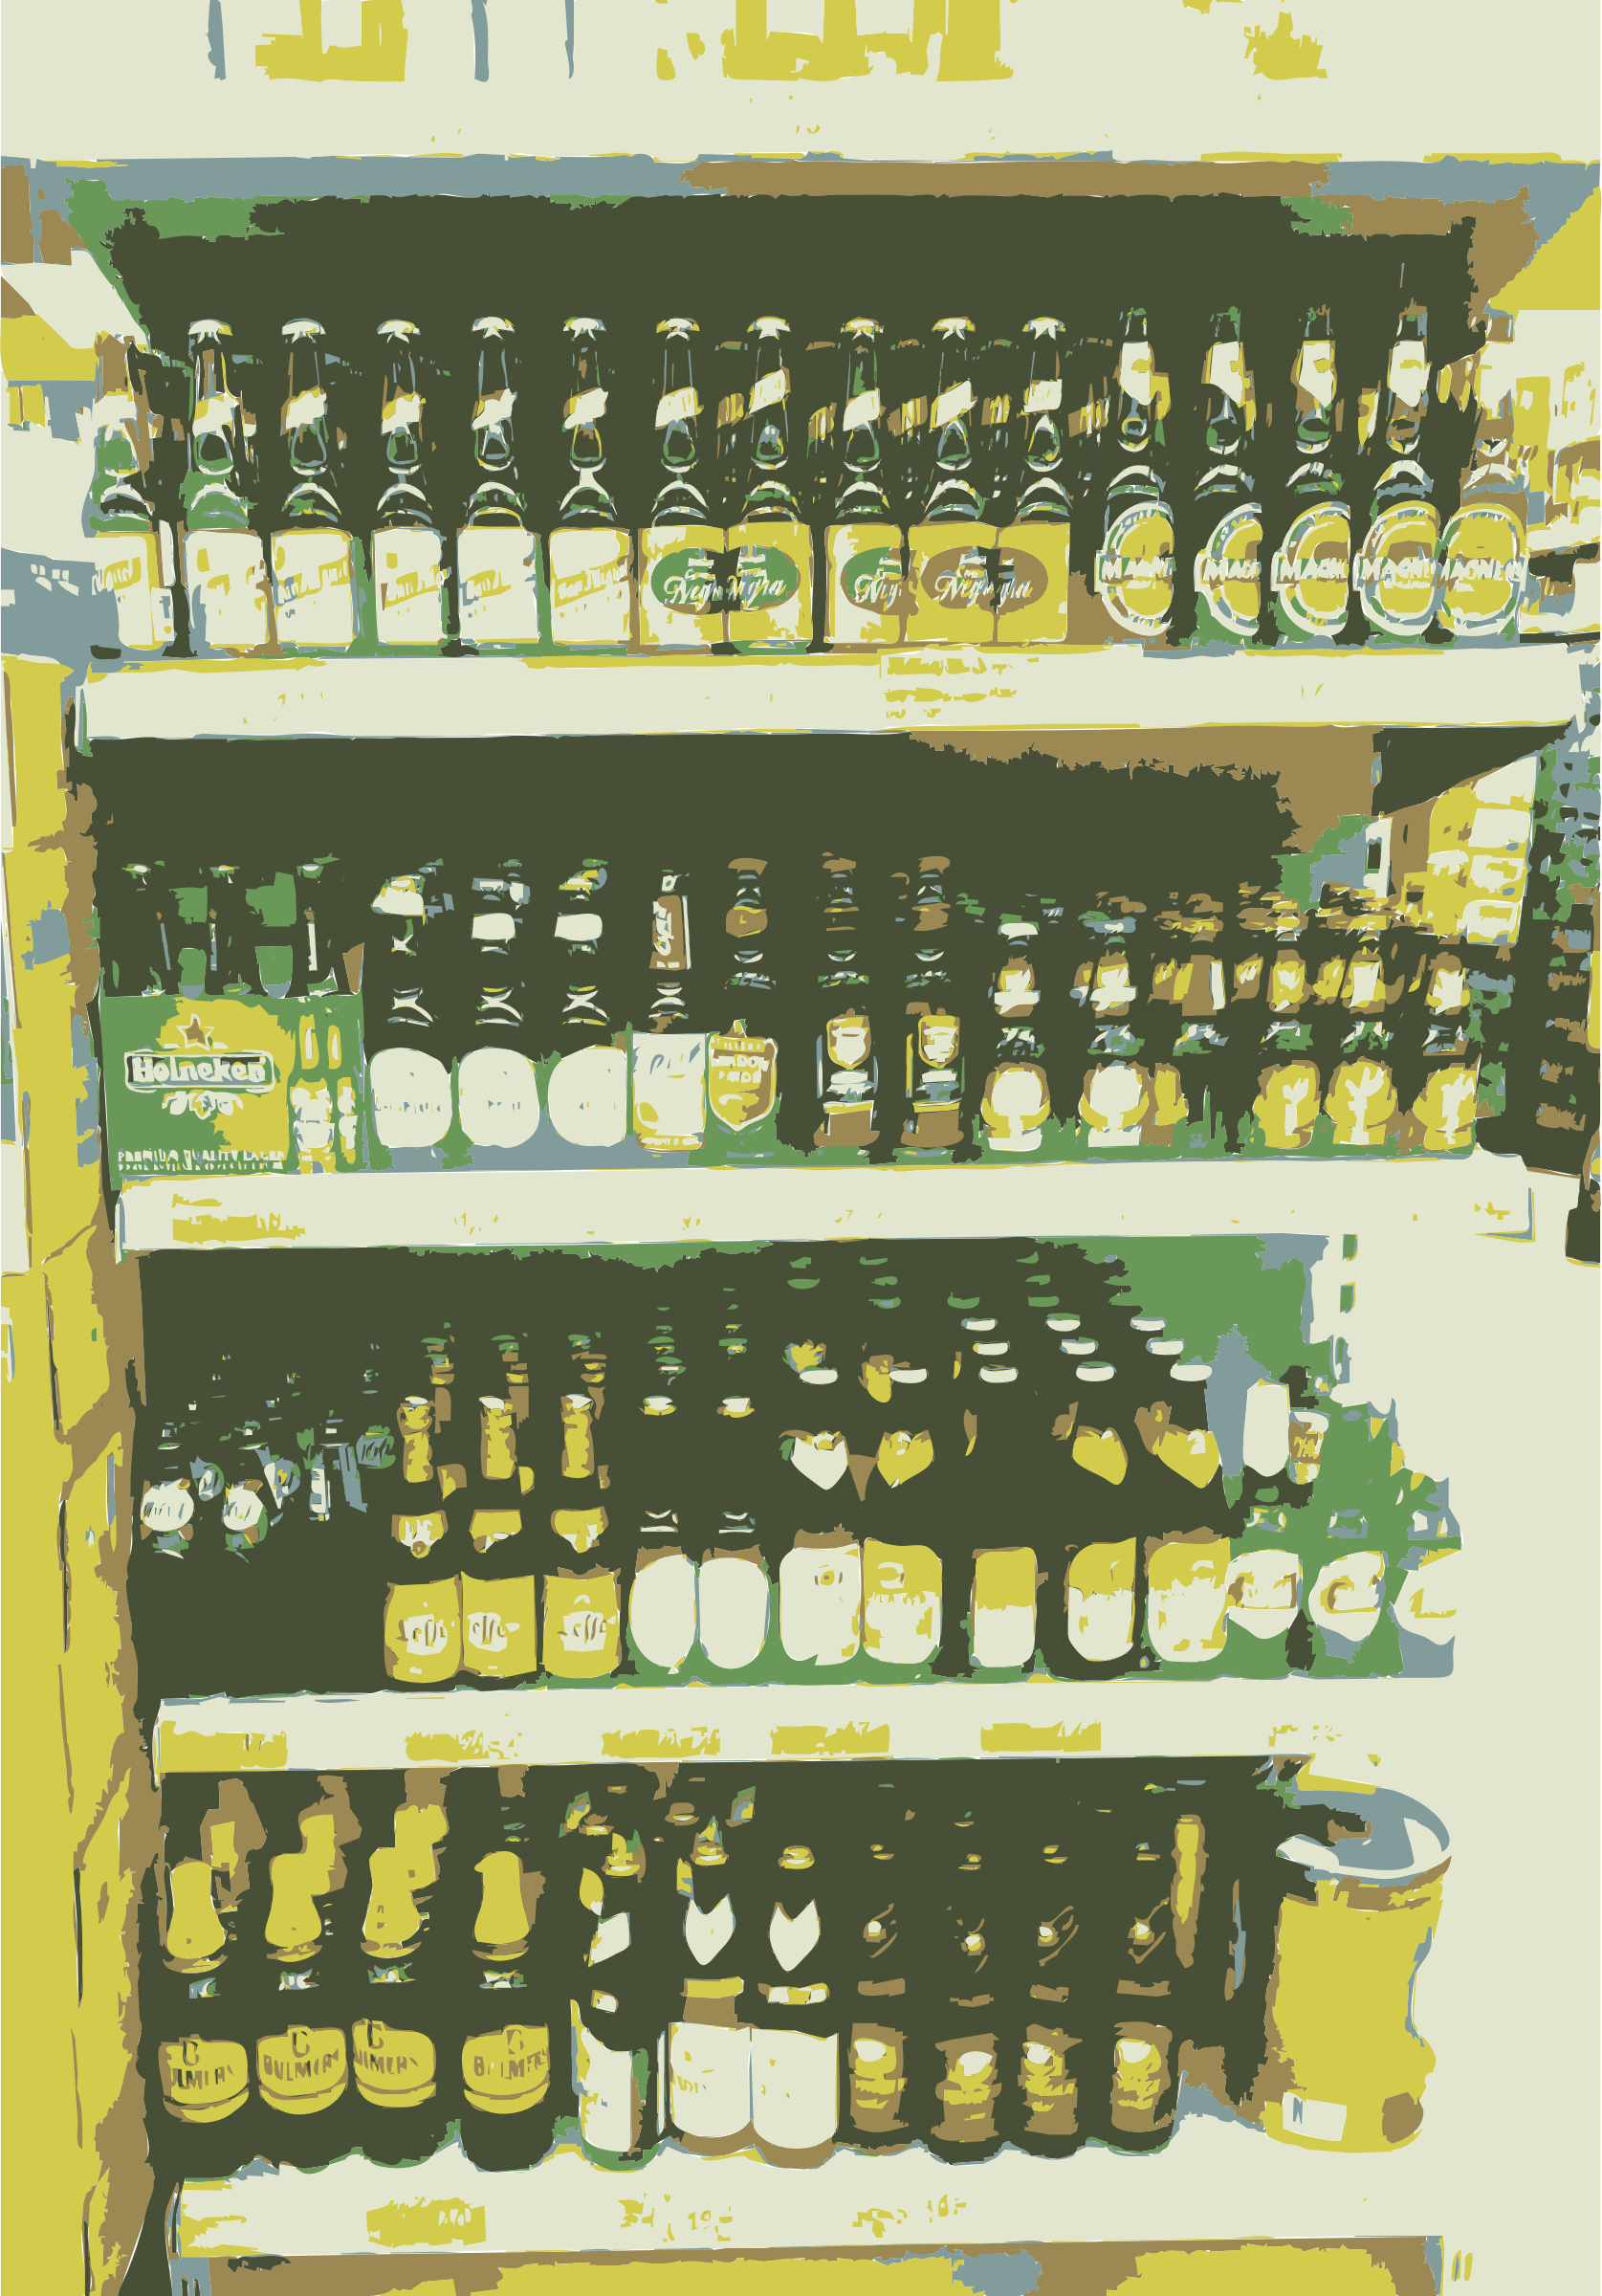 Wall of beers by rejon